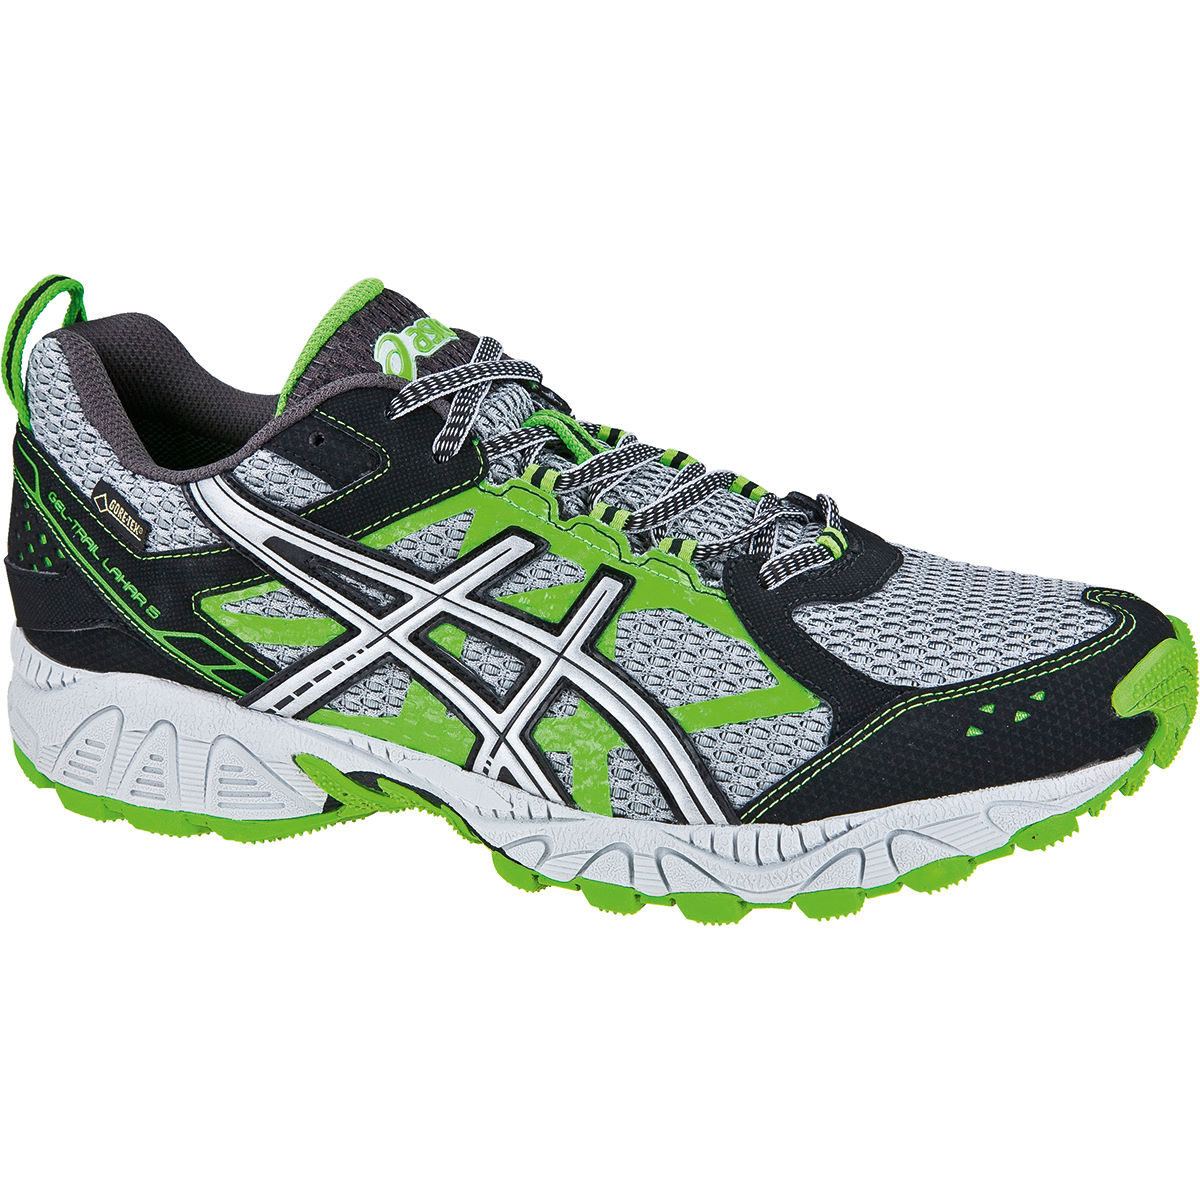 chaussures de running trail asics gel trail lahar 5 gore tex shoes aw13 wiggle france. Black Bedroom Furniture Sets. Home Design Ideas